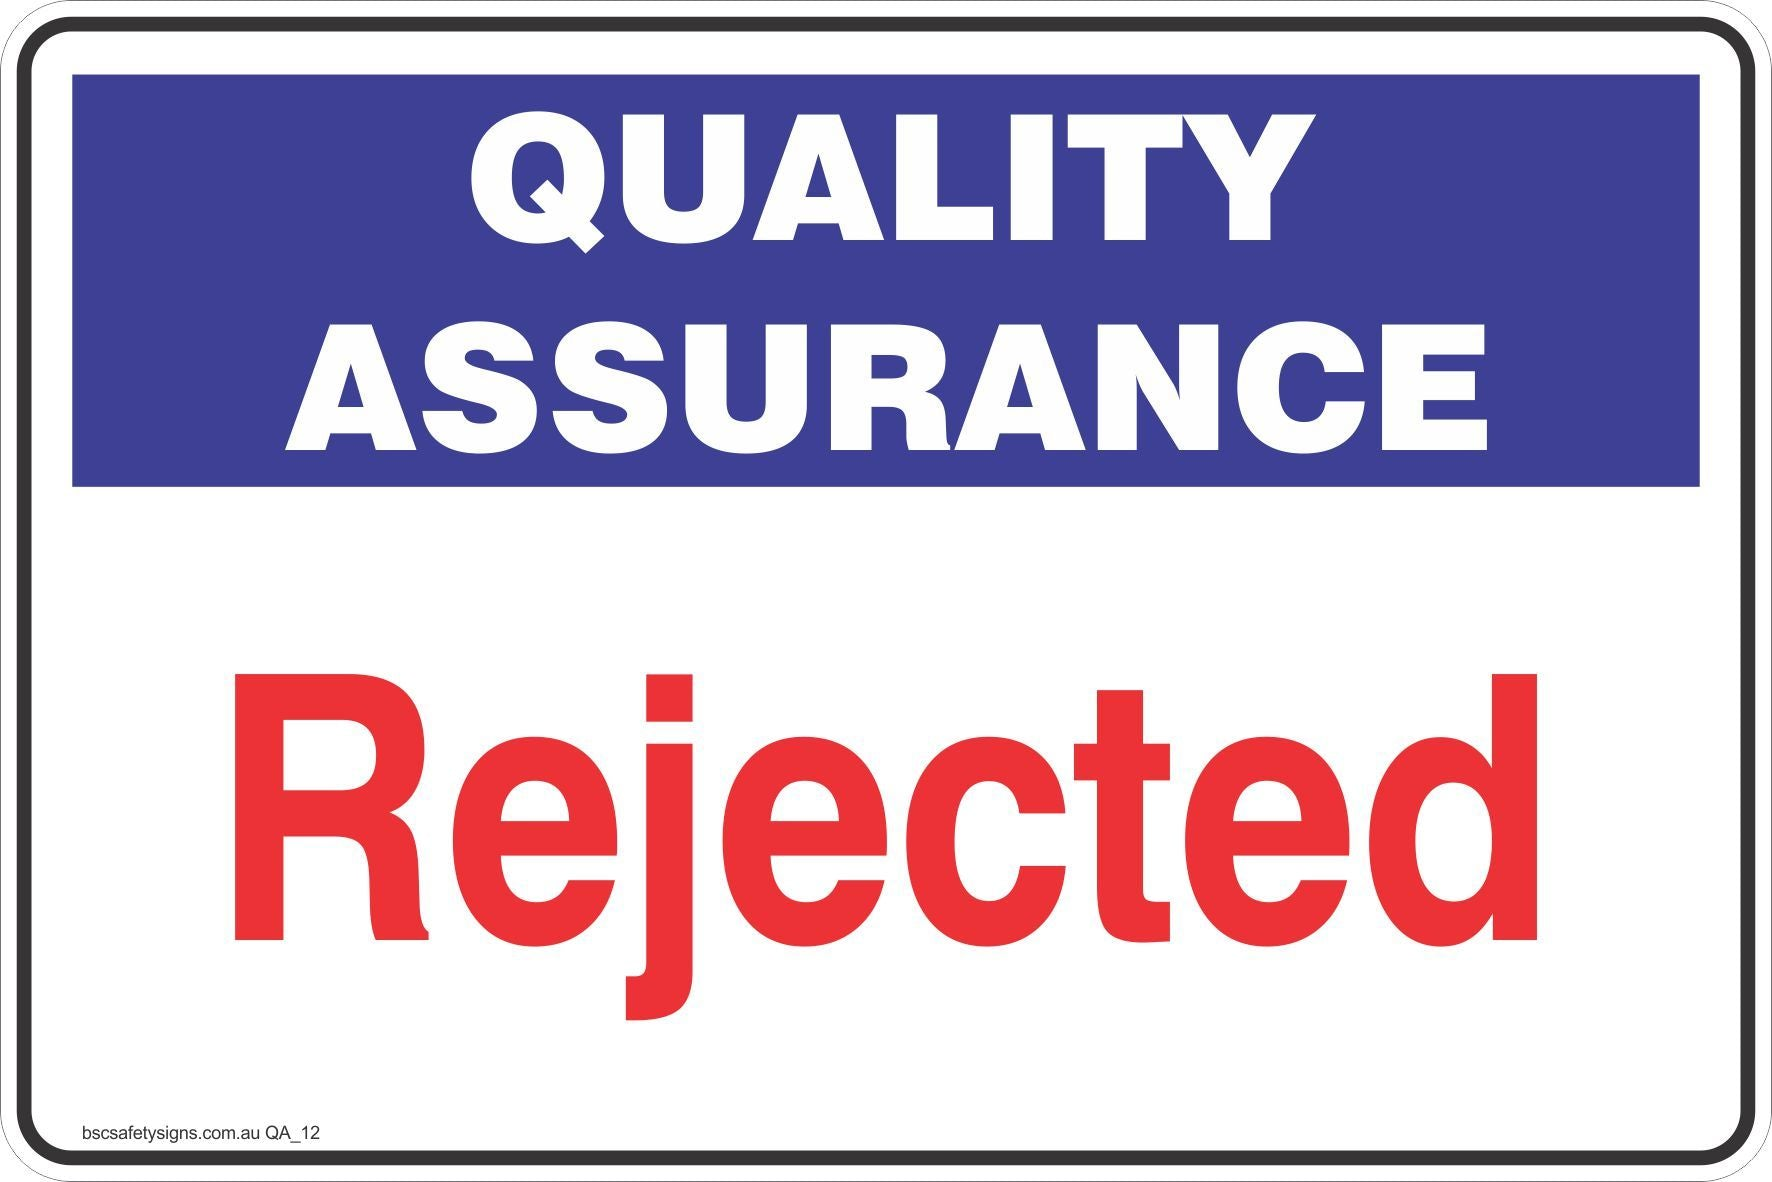 Quality Assurance Rejected  Safety Signs and Stickers